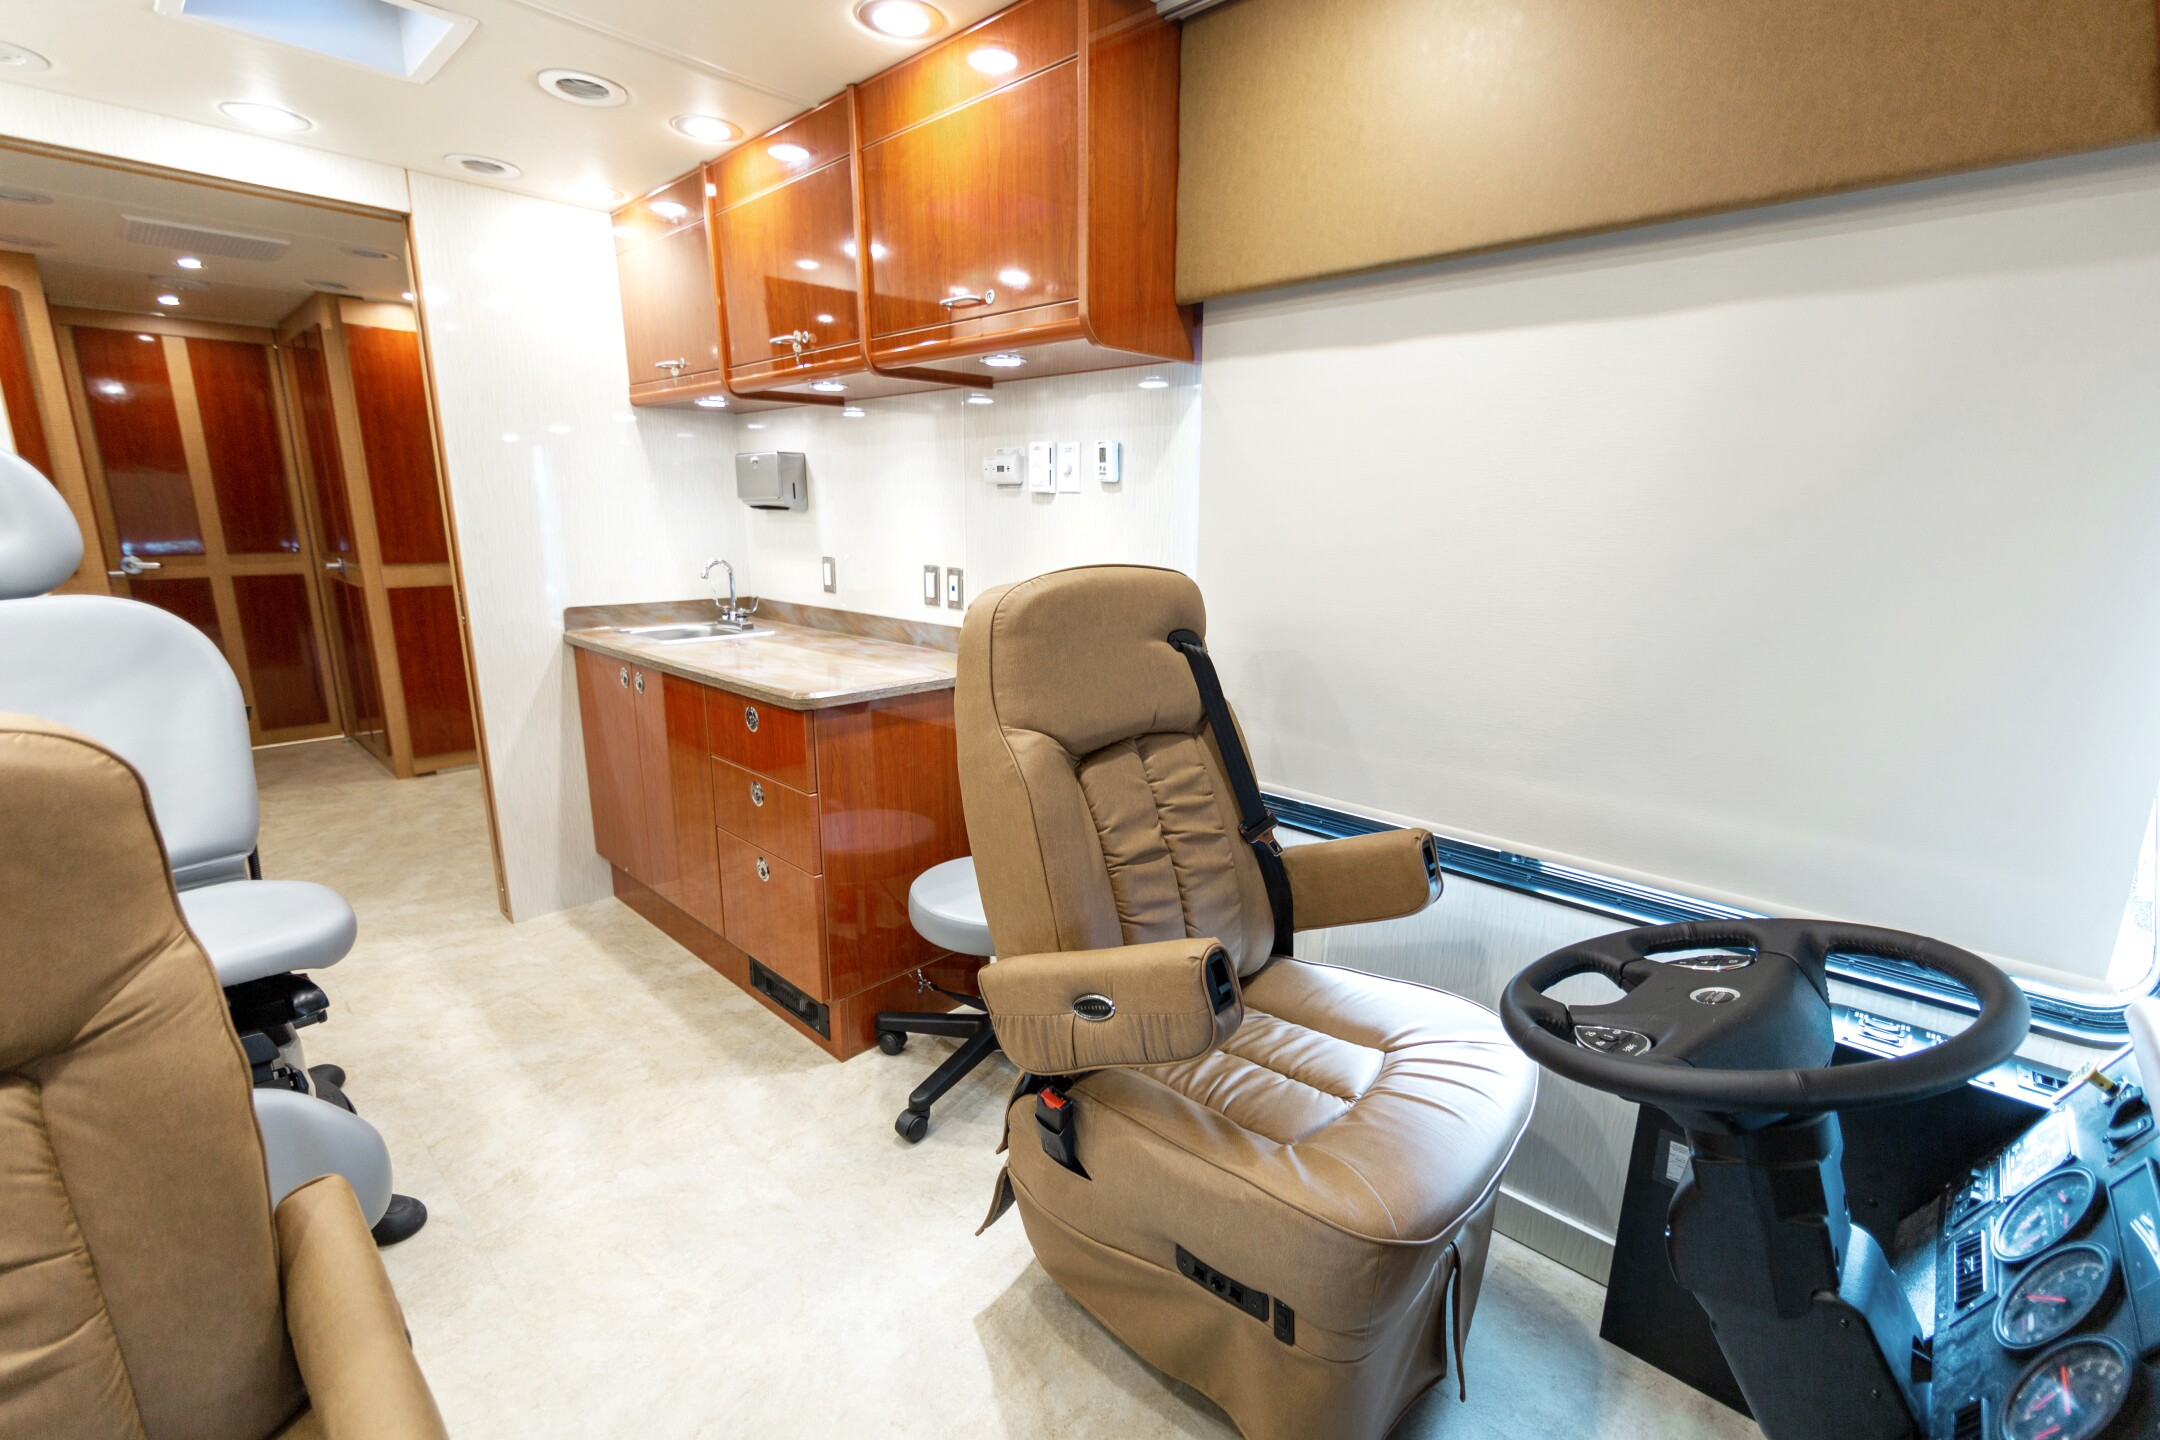 Photos: Huntsman Cancer Institute rolls out new mobile screening and educationbus